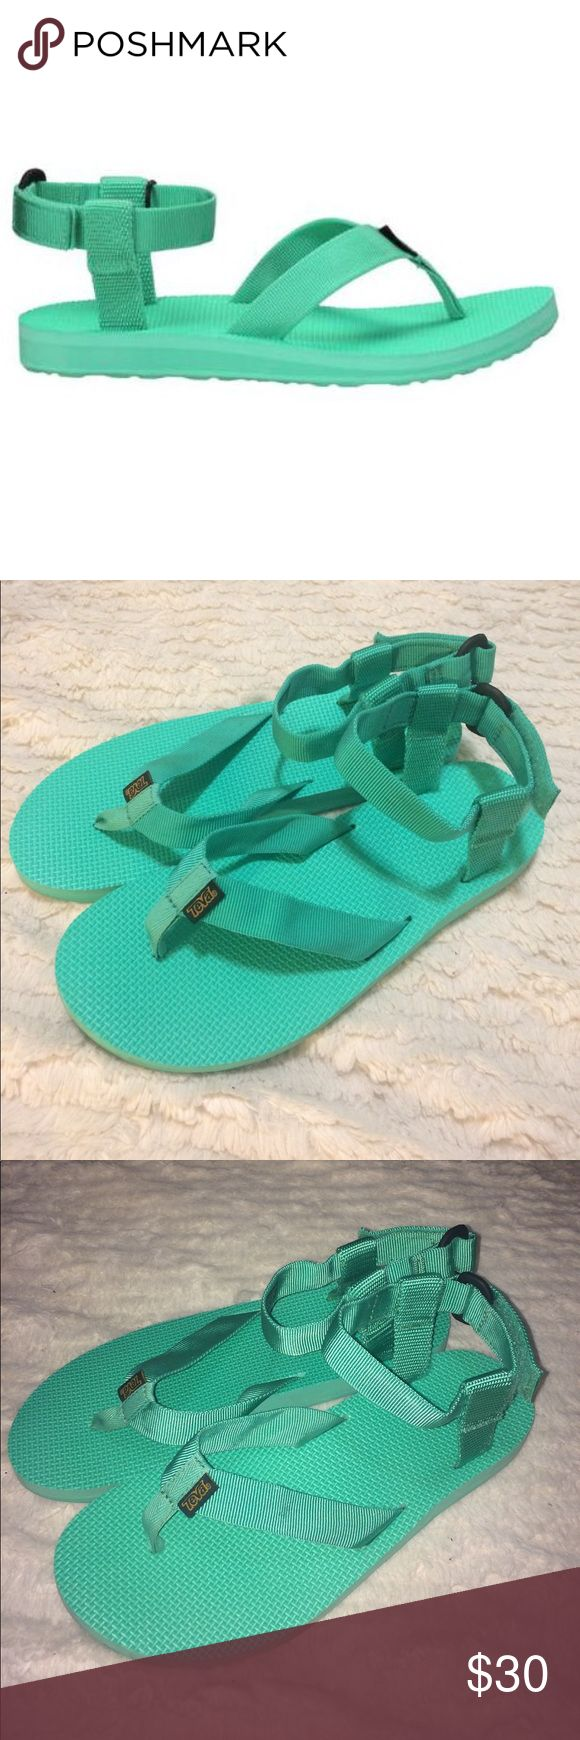 Teva teal flip flop ankle strap sandals size 9 Very cute Teva flip flops with an ankle strap. Only worn one time. Size 9. The perfect Tiffany blue mint teal color. Teva Shoes Sandals